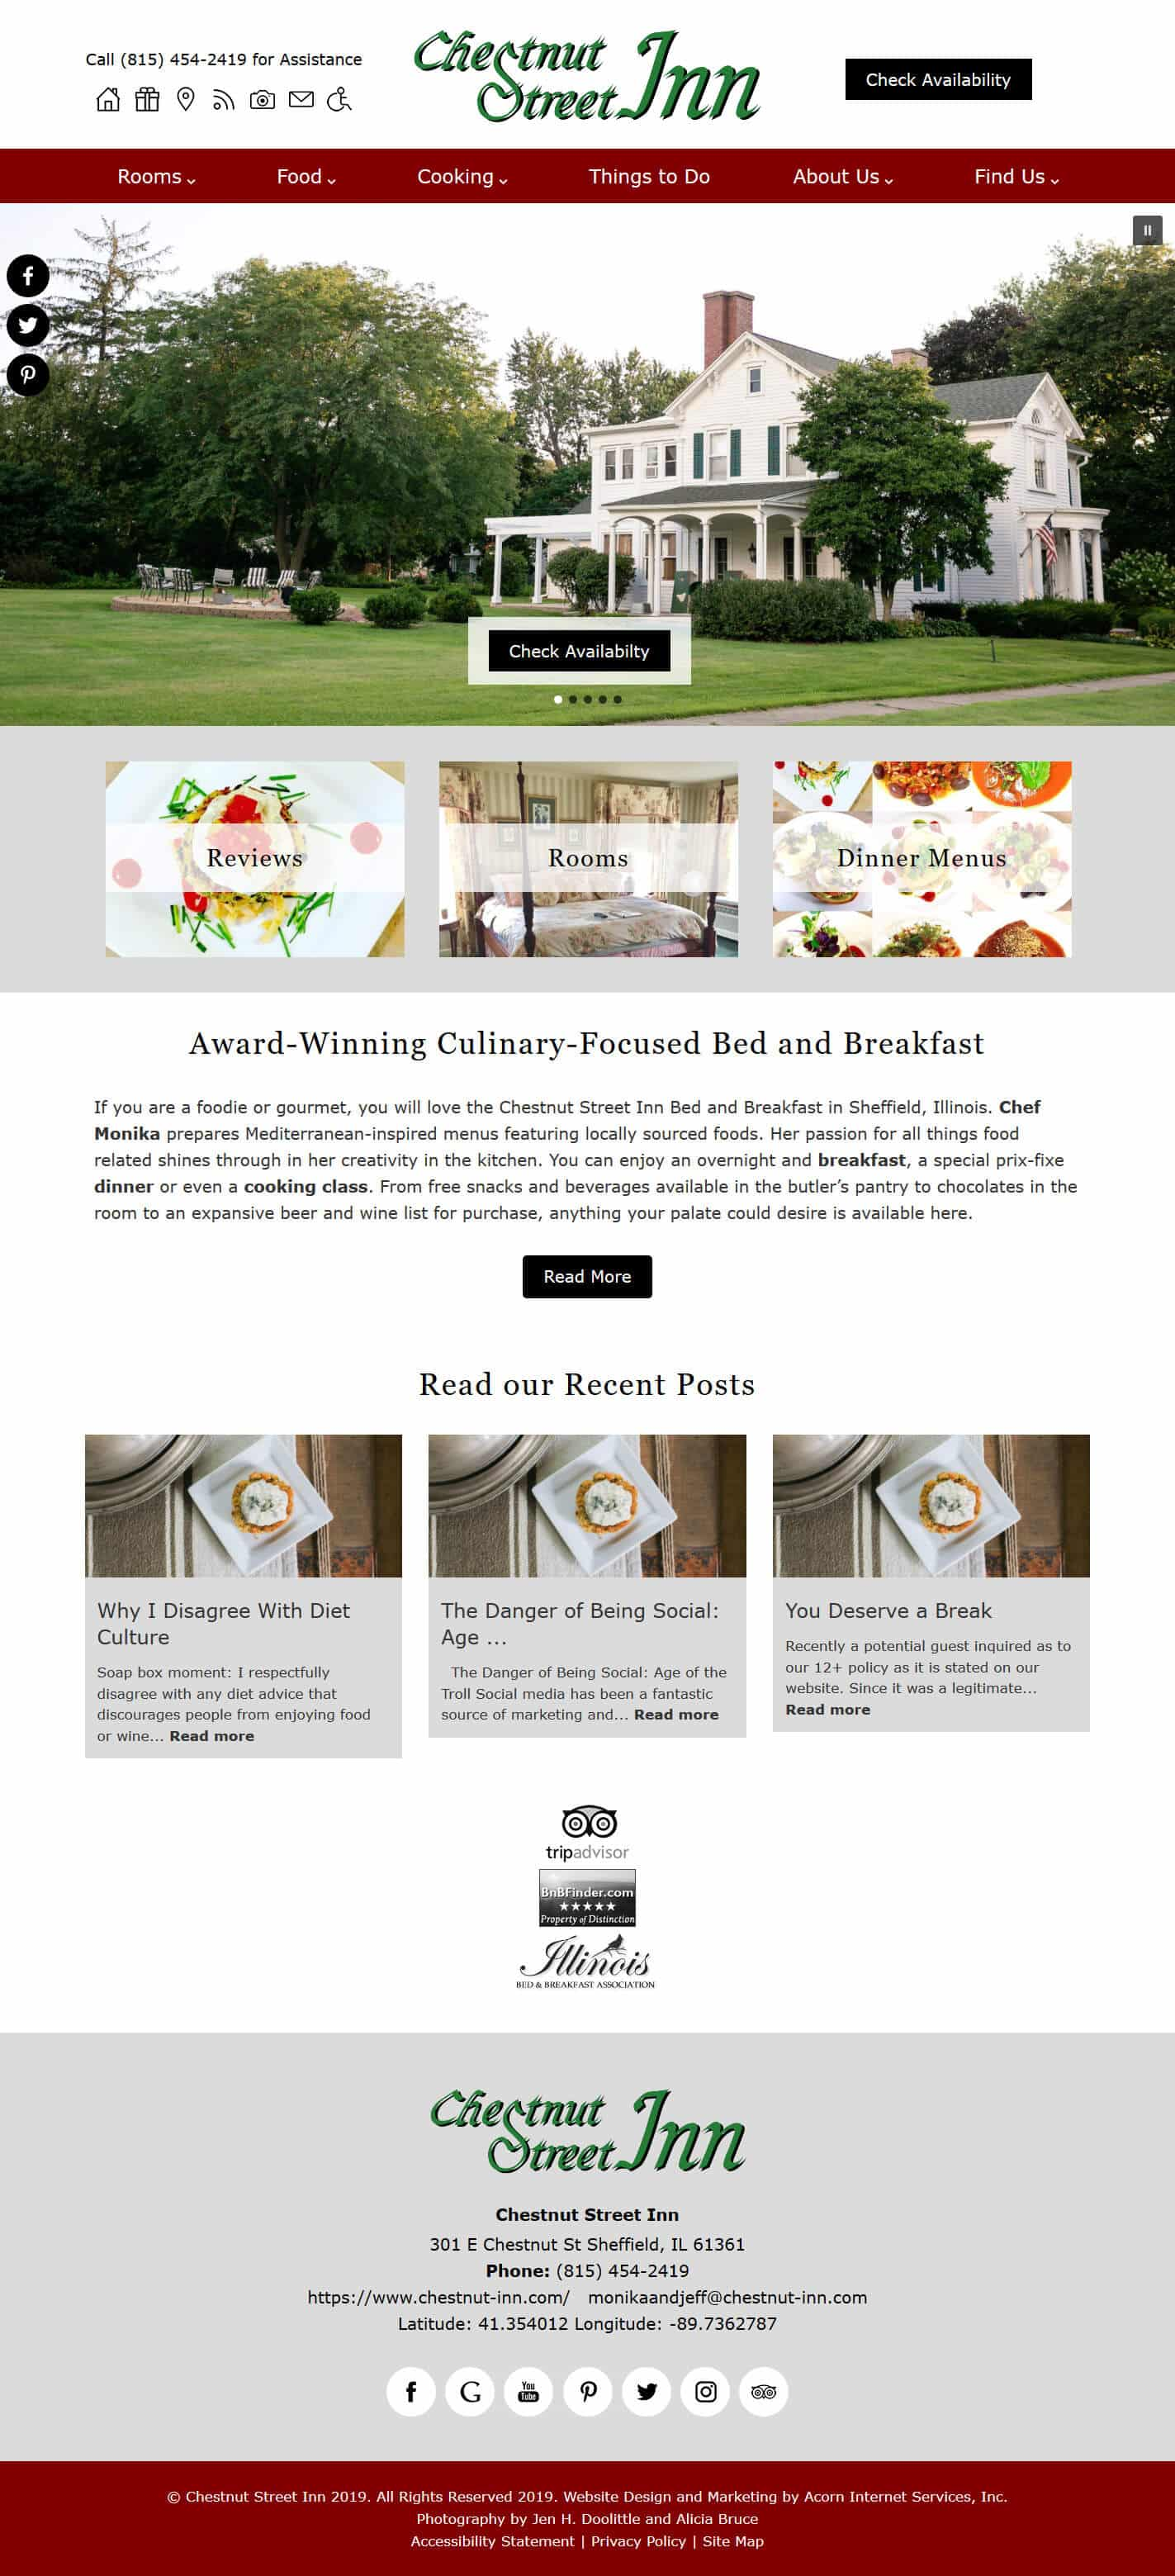 Chestnut Street Inn's home page